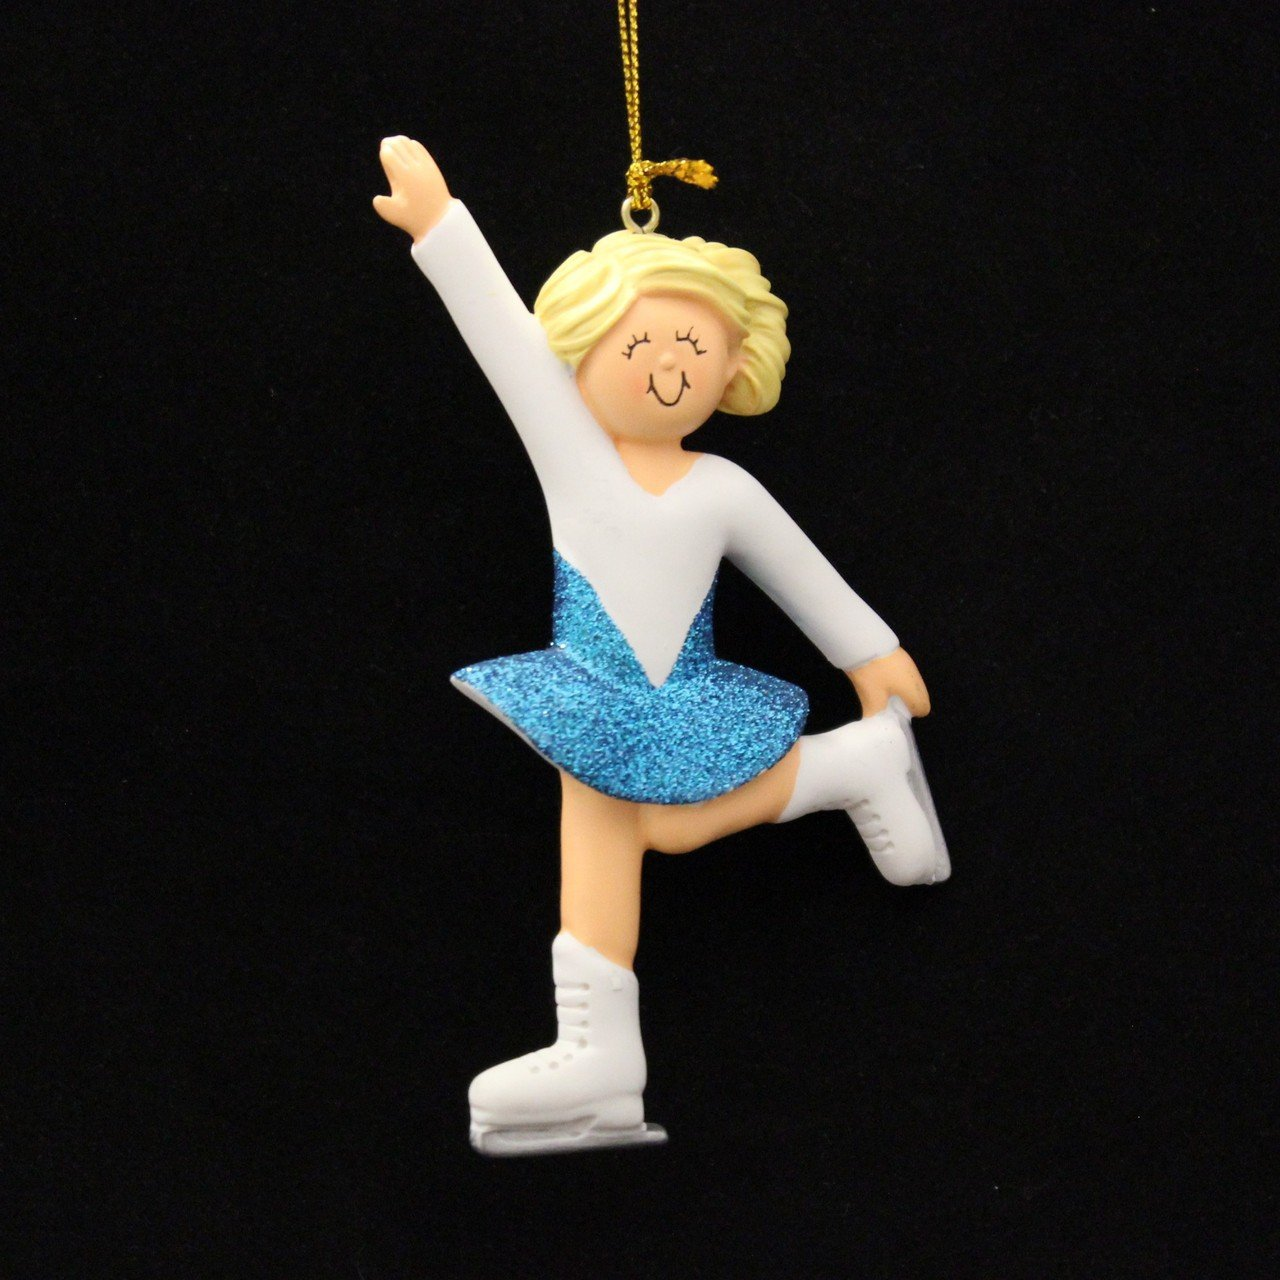 Ornament Central 2291 Female Blonde Ice Skater Personalized Christmas Ornament